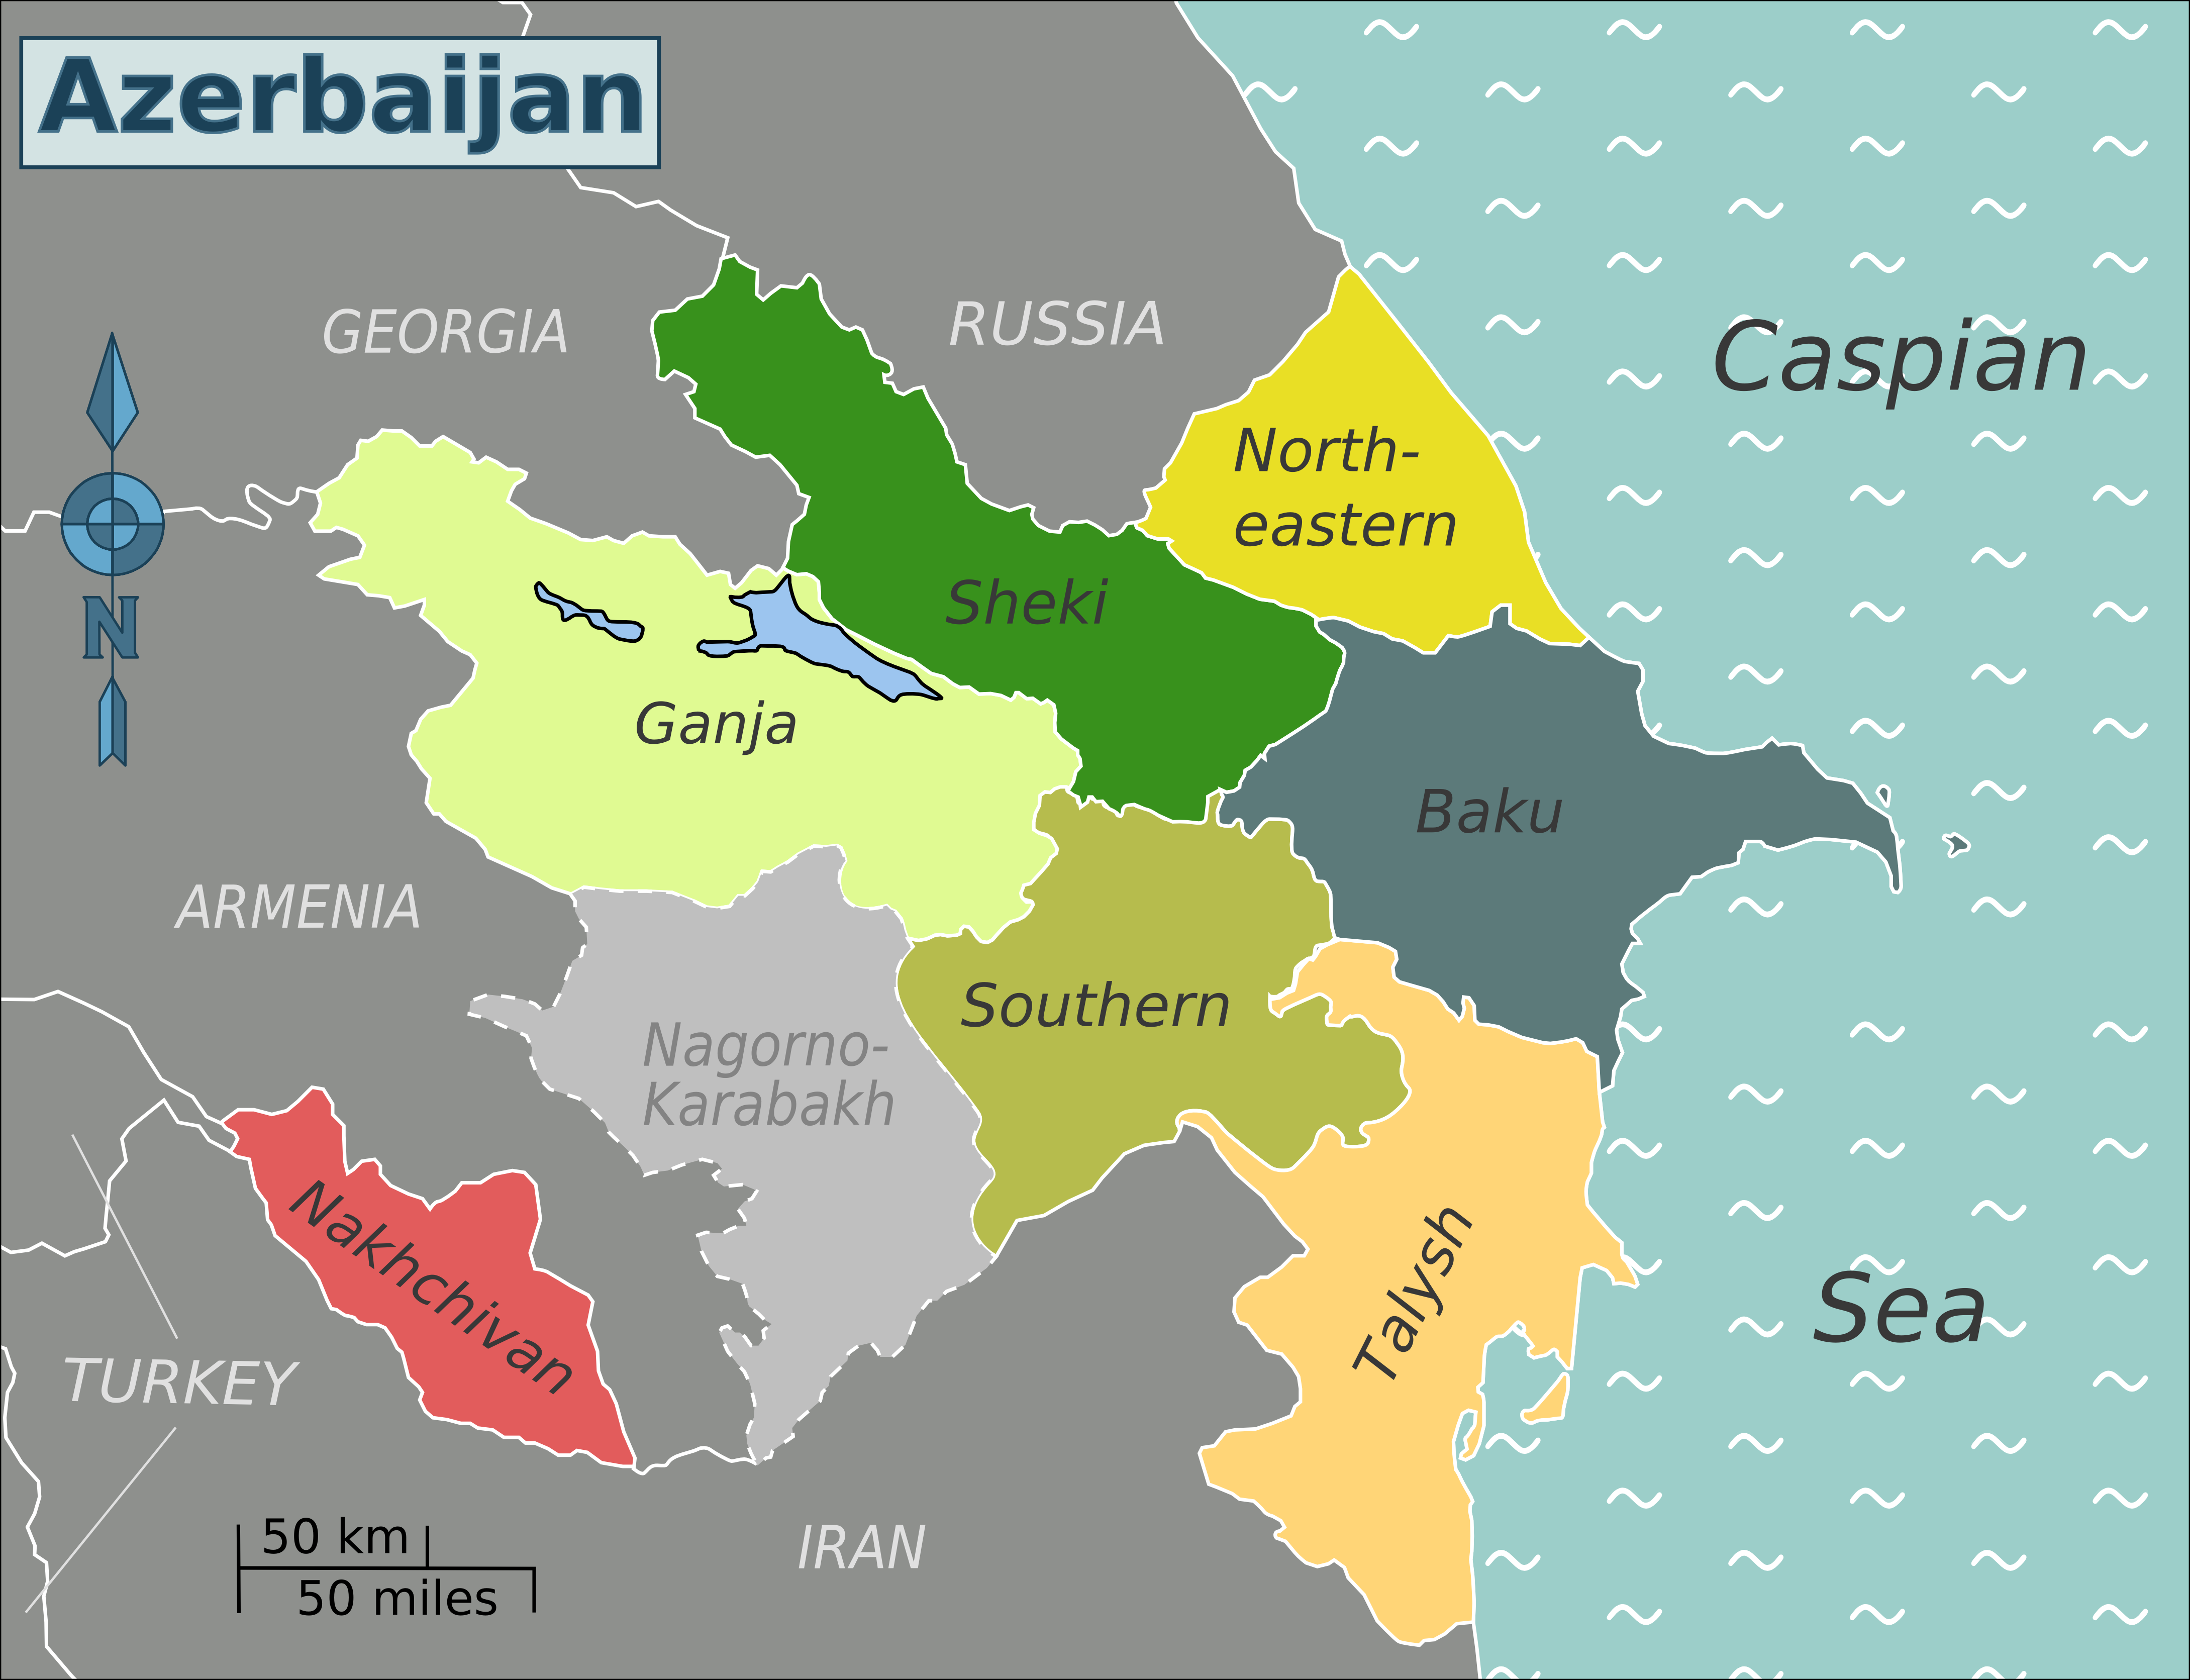 goergia map with File Azerbaijan Regions on Downey Ca likewise File GDOT districts furthermore File azerbaijan regions together with 25 together with Visa policy of Uruguay.